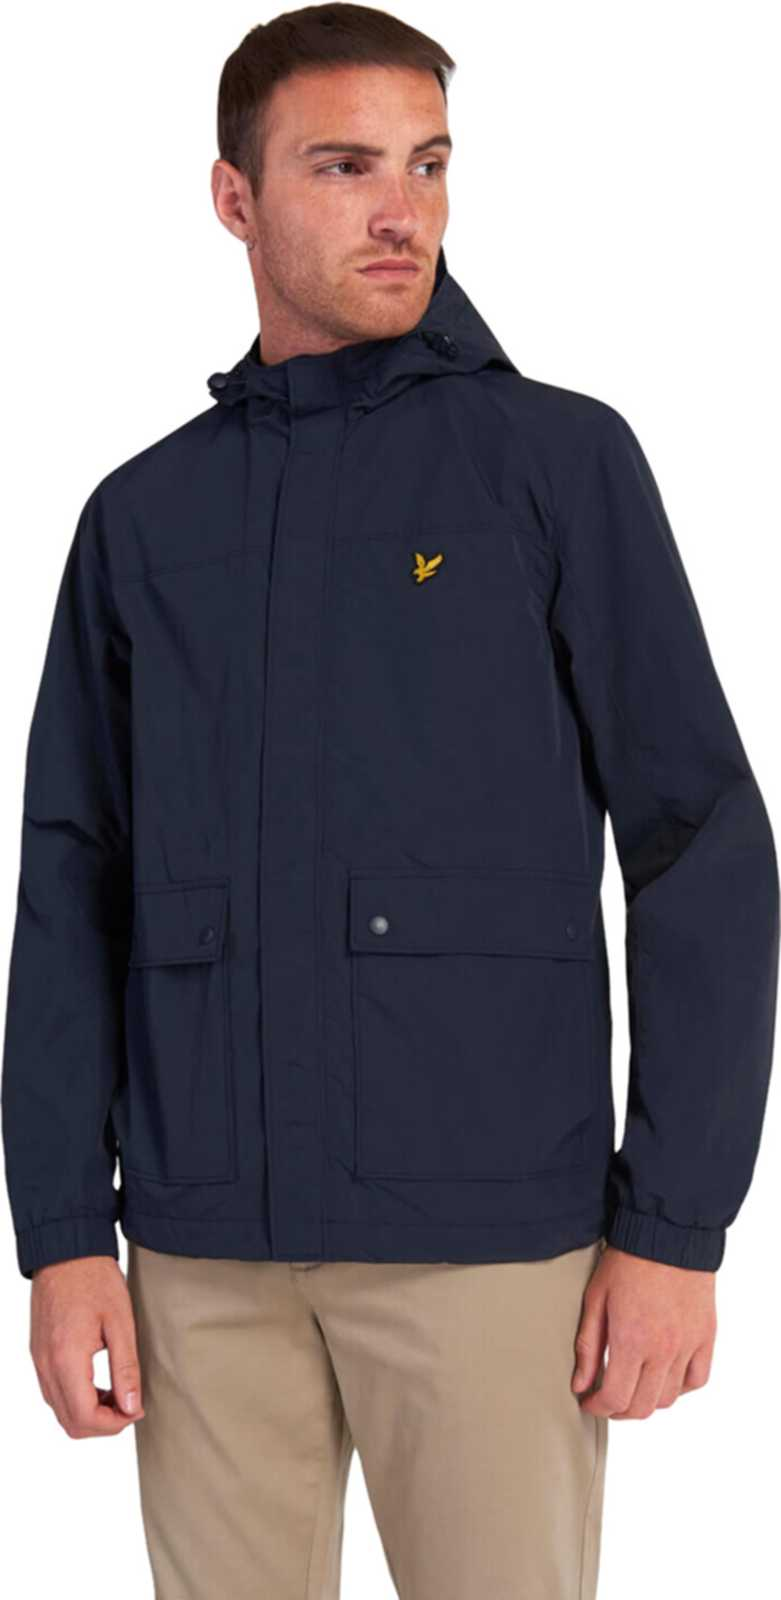 Lyle & Scott Hooded Pocket Jacket Navy